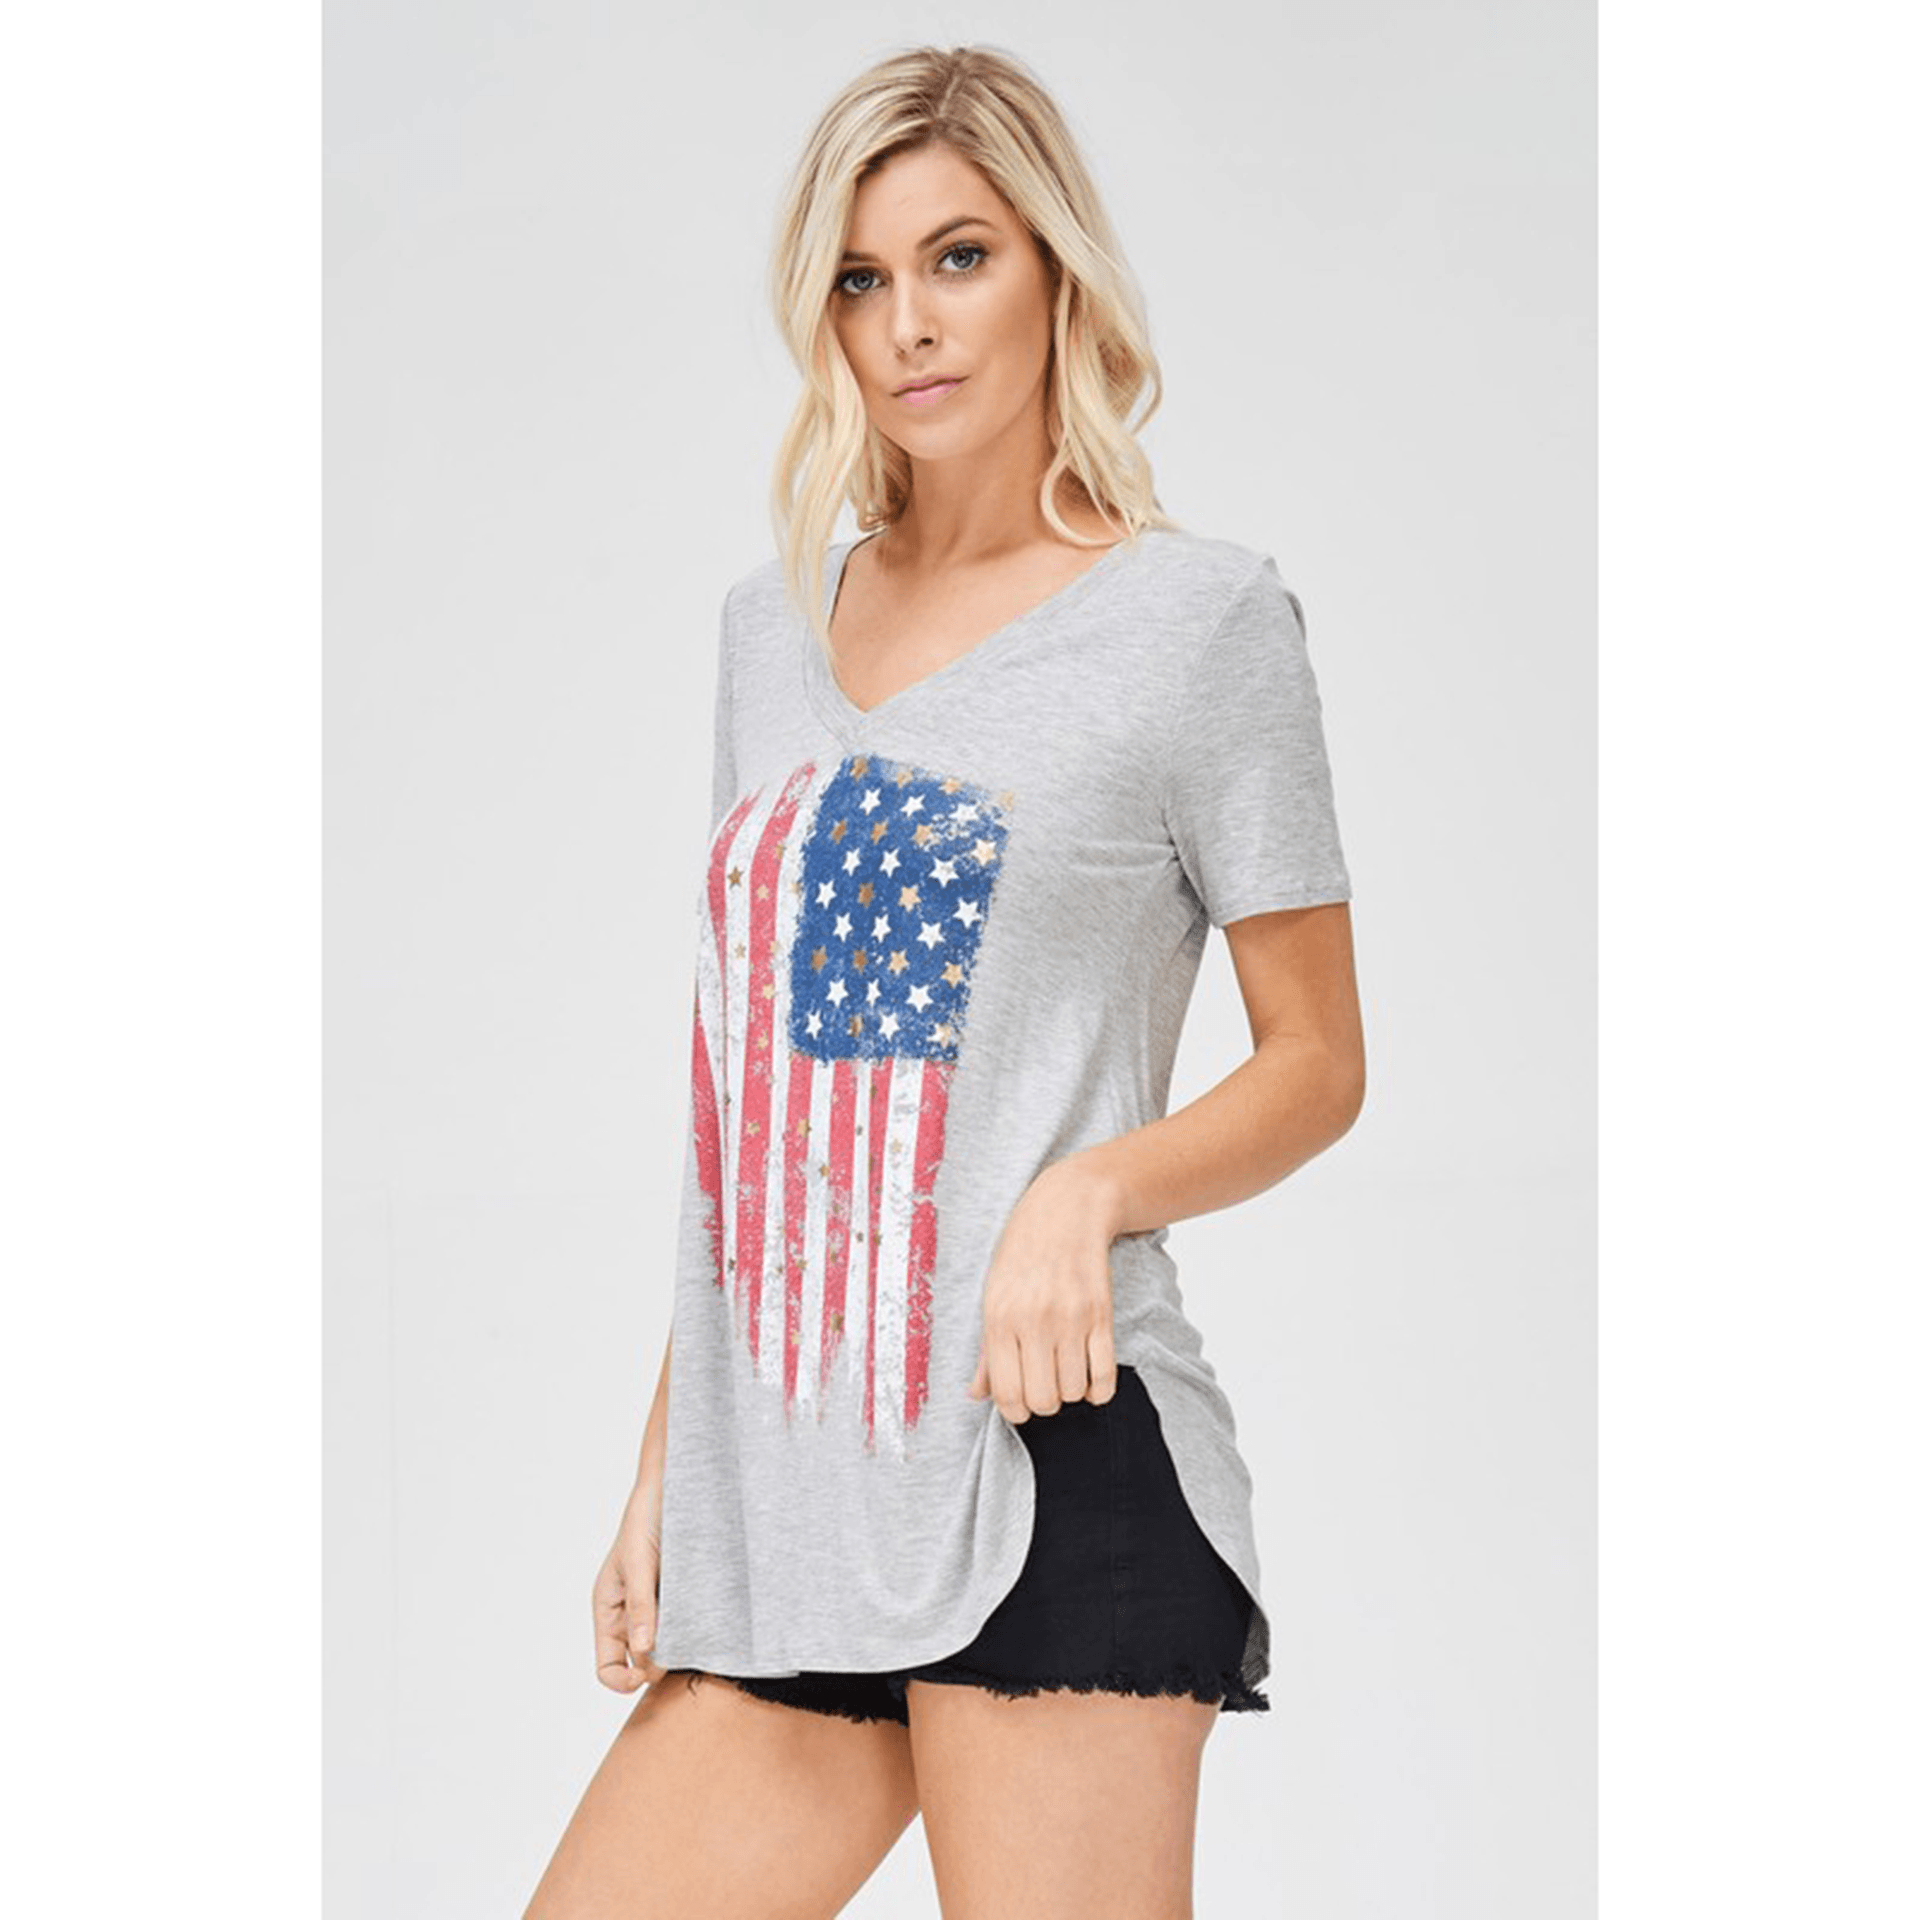 Women's American Flag Top (2 Colors) - Arlo and Arrows